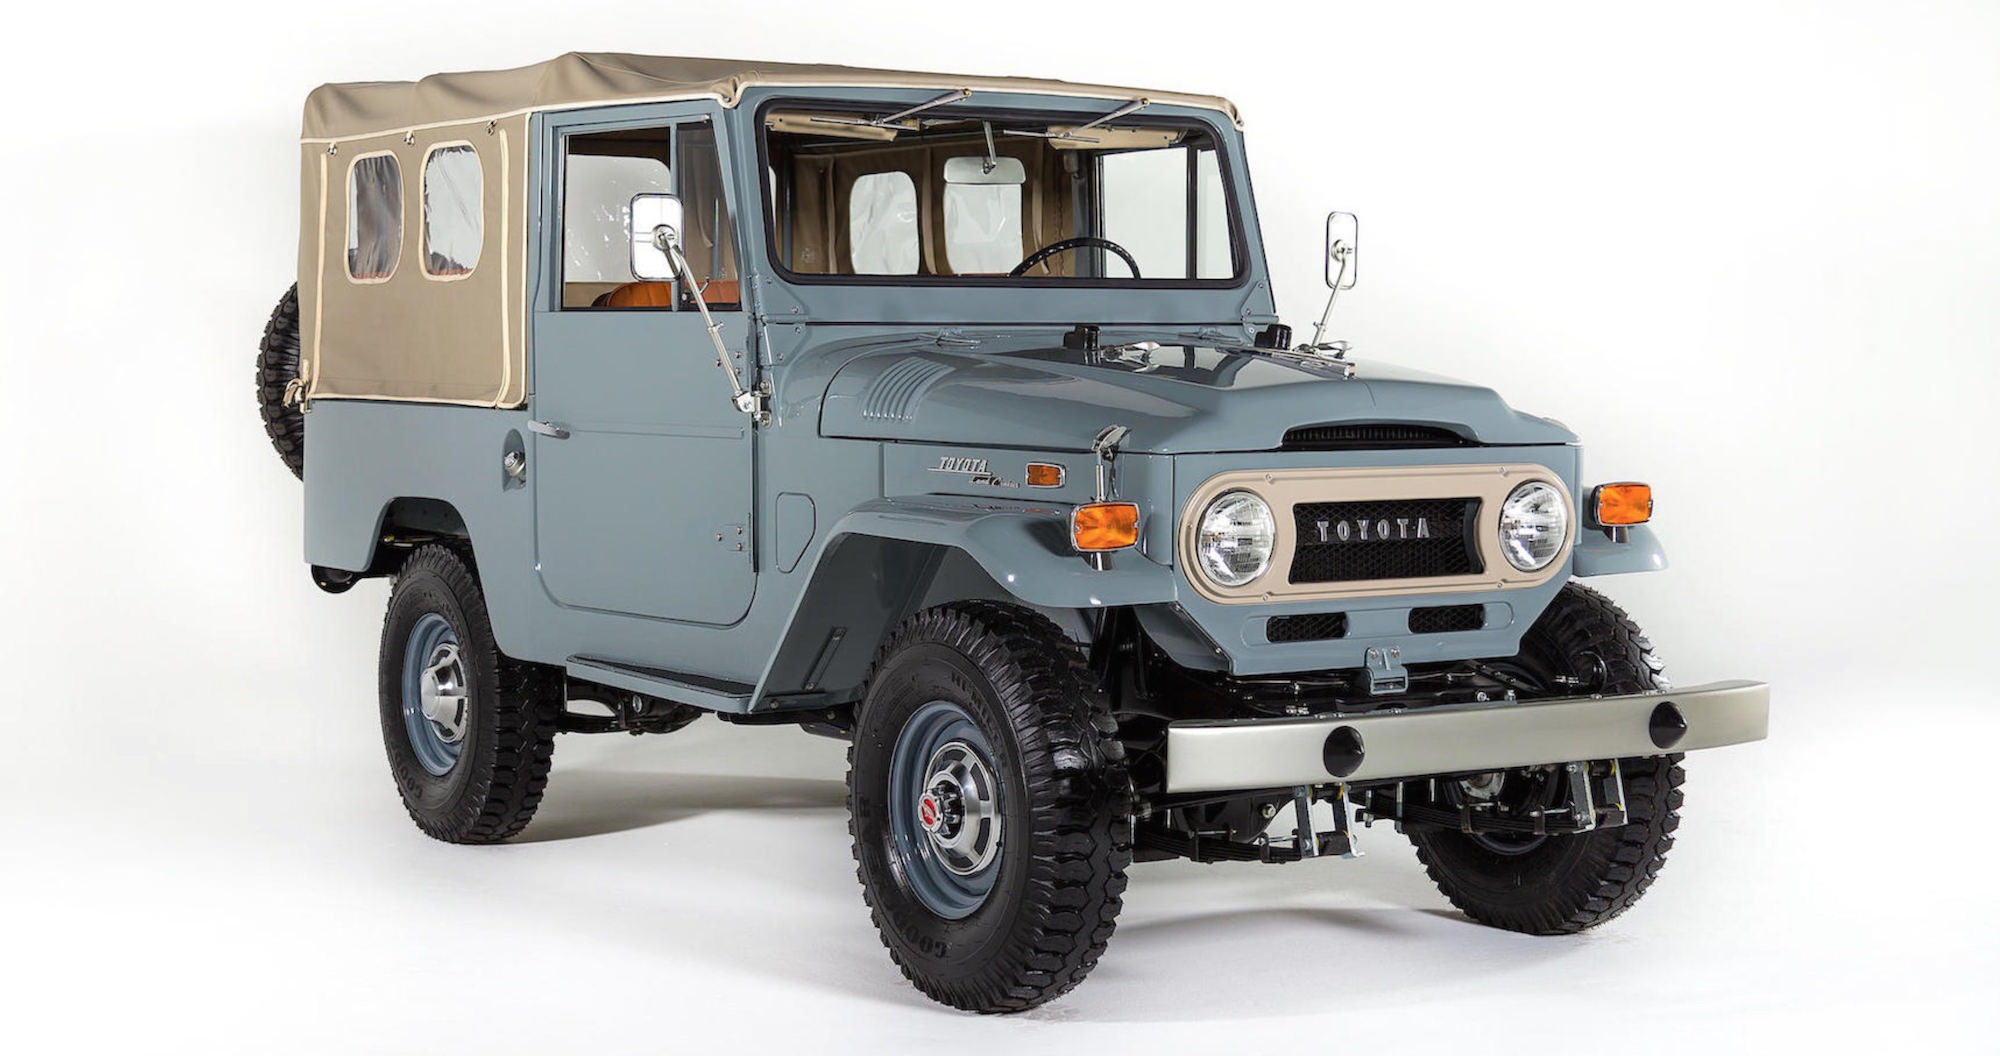 toyota land cruiser fj43. Black Bedroom Furniture Sets. Home Design Ideas